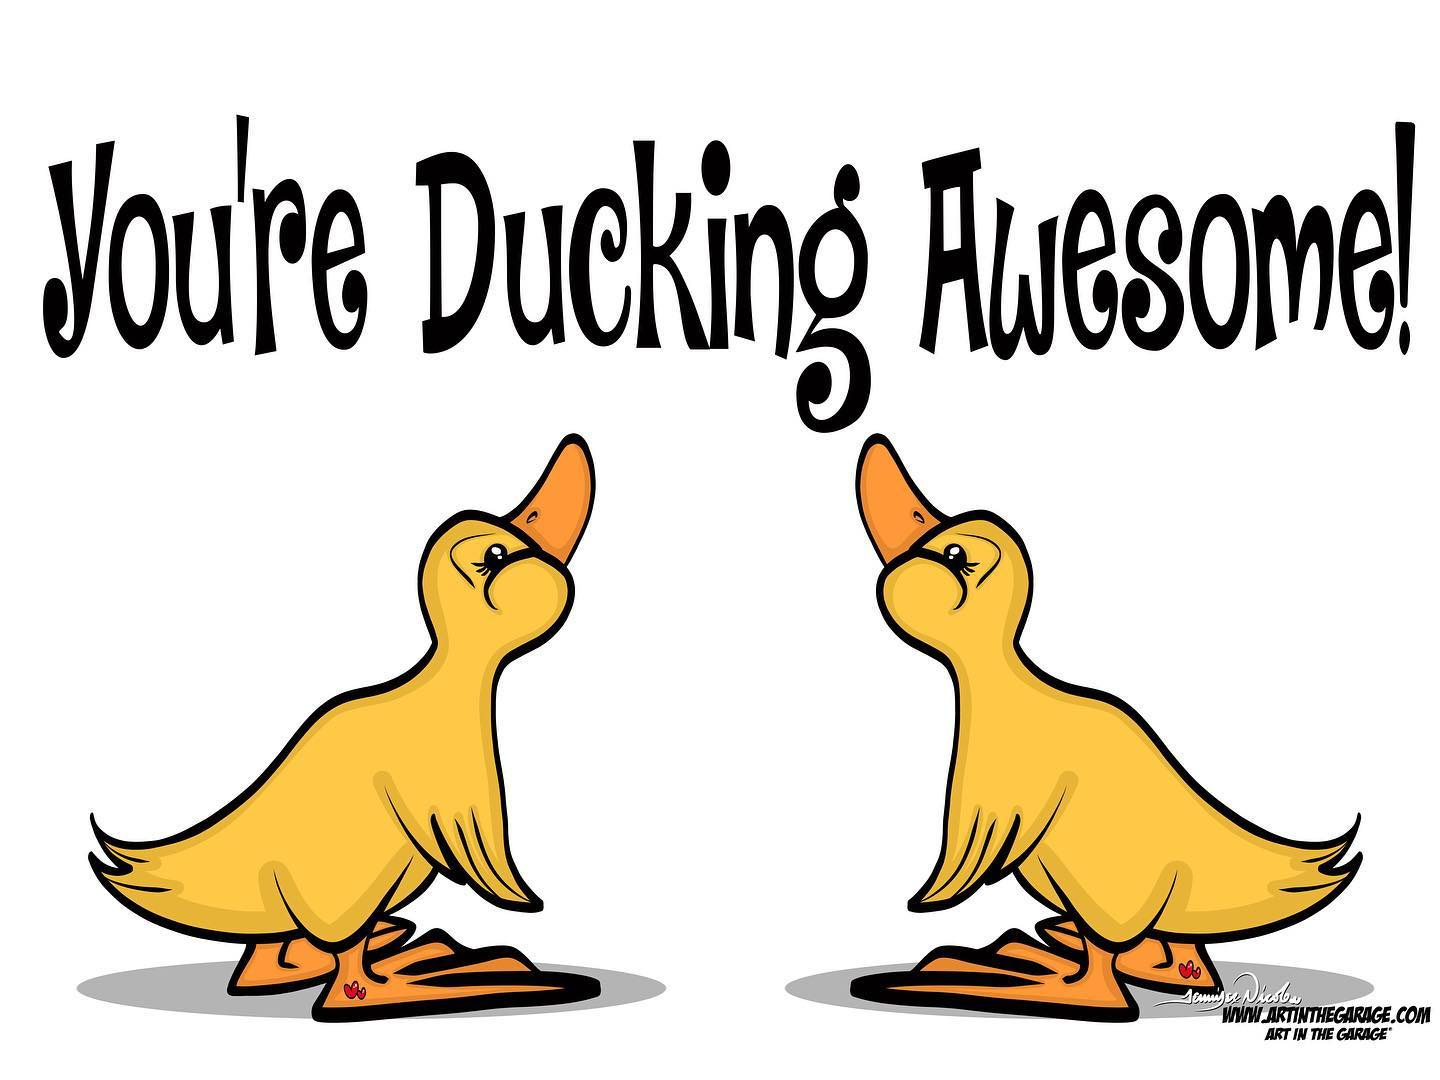 9-3-20 You're Ducking Awesome